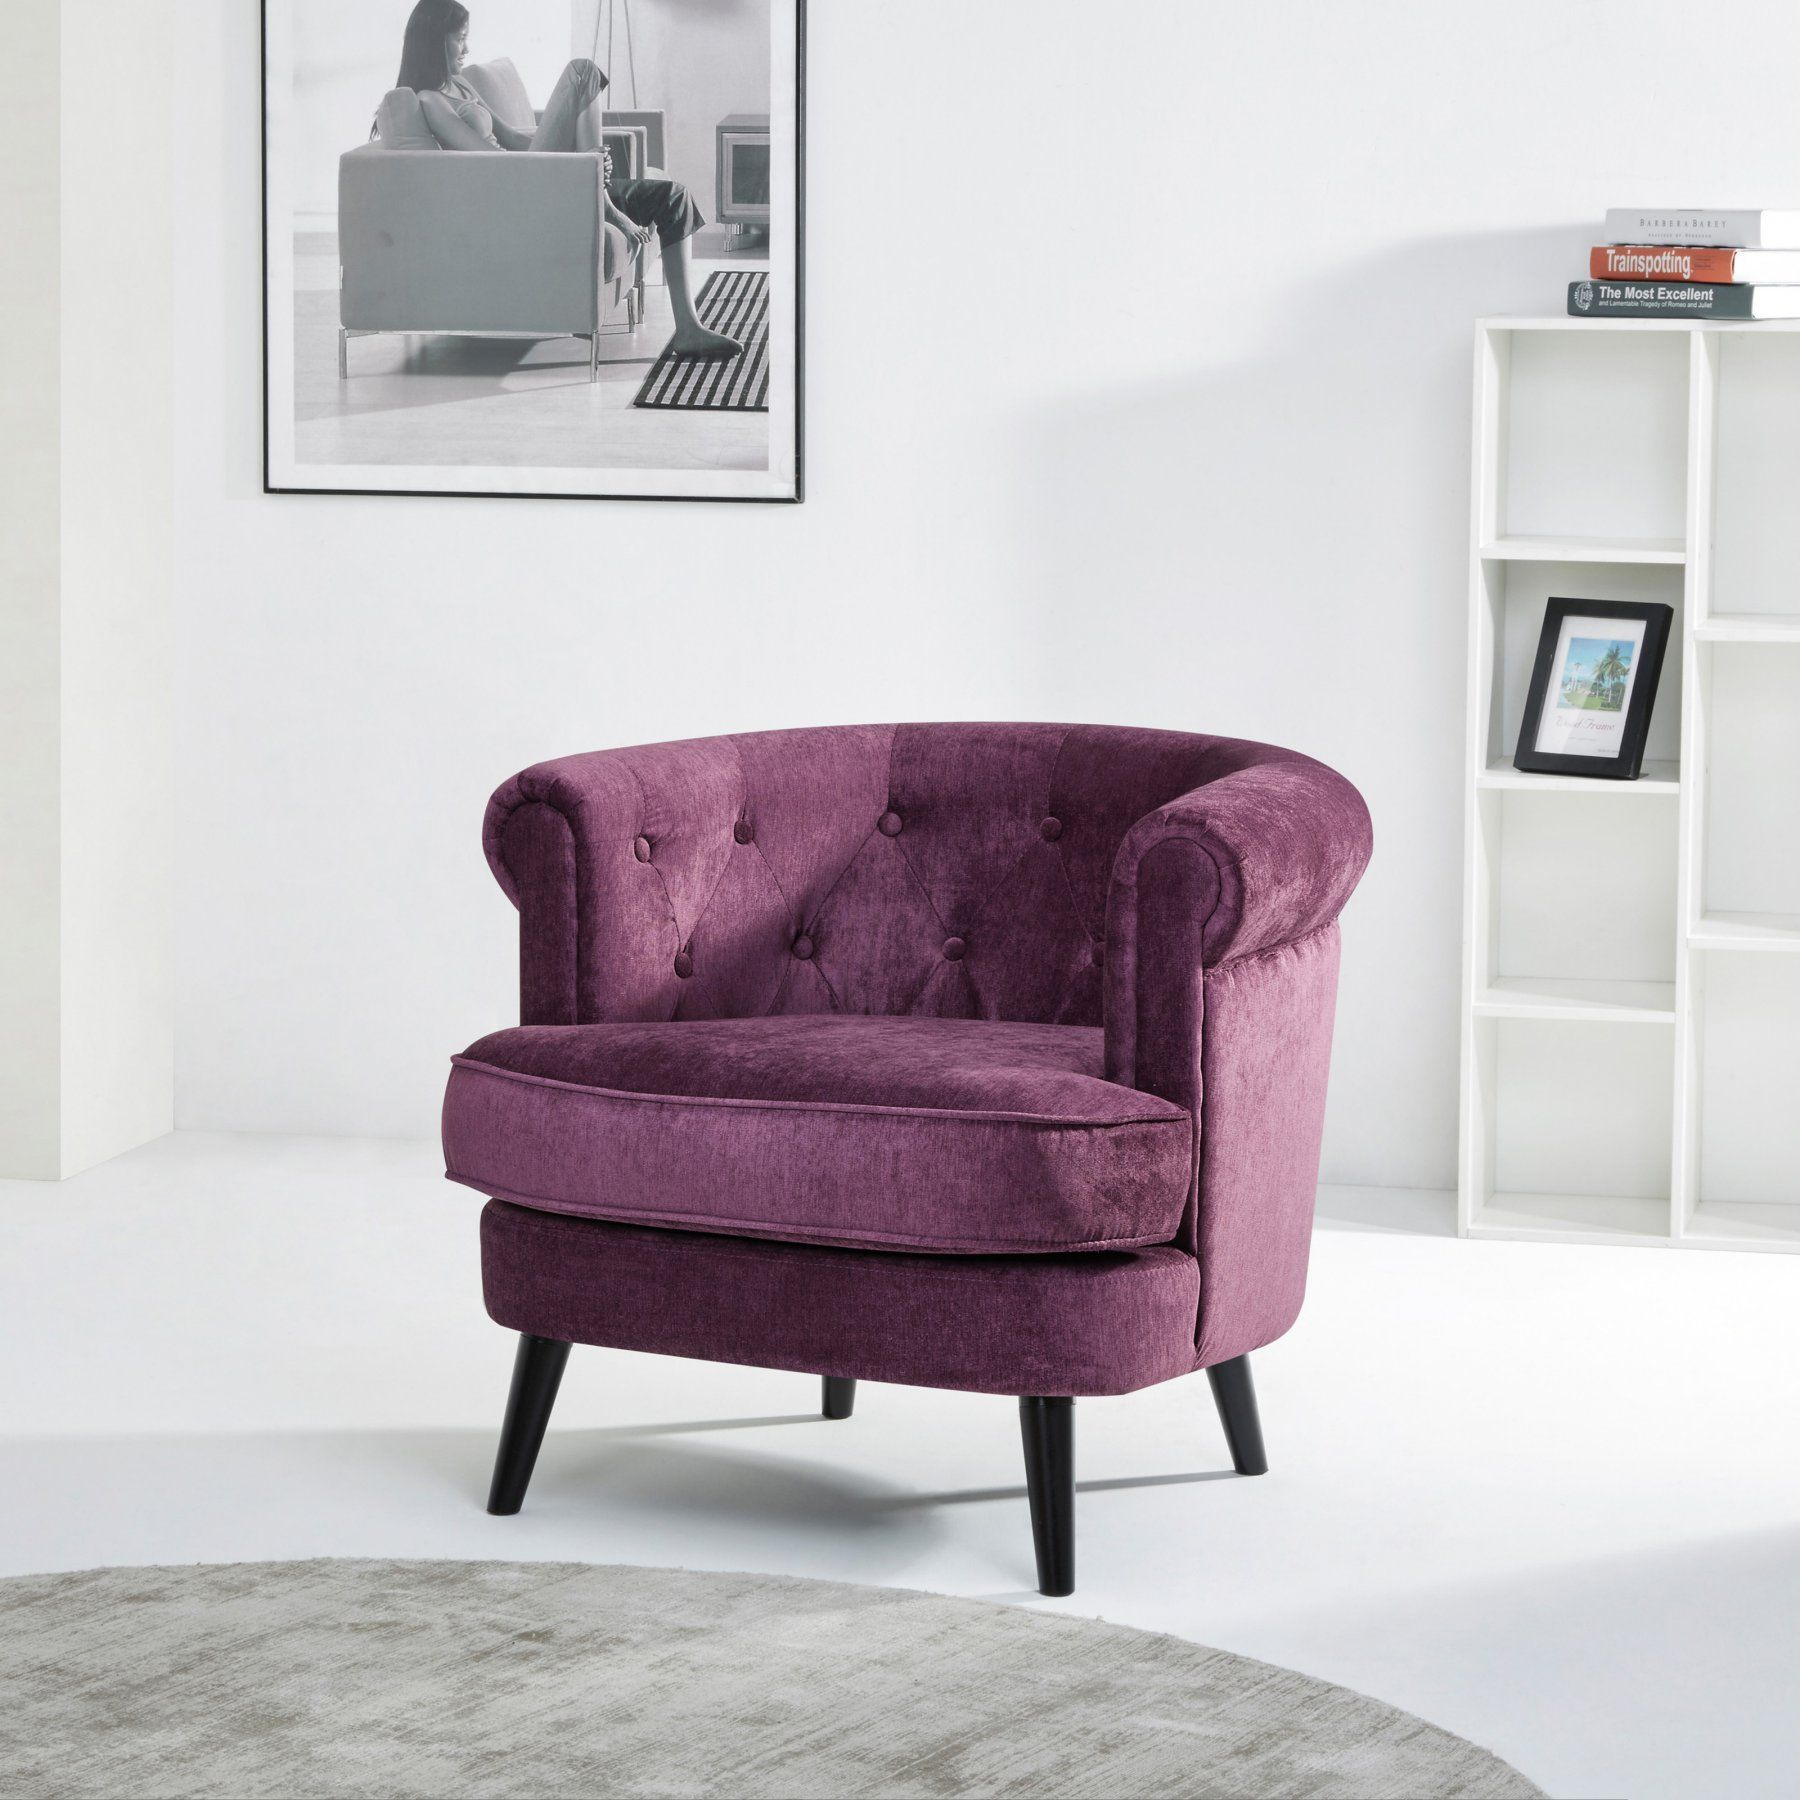 gold sparrow madison amethyst club chair  adcmadchankxame. gold sparrow madison amethyst club chair  adcmadchanmxbei